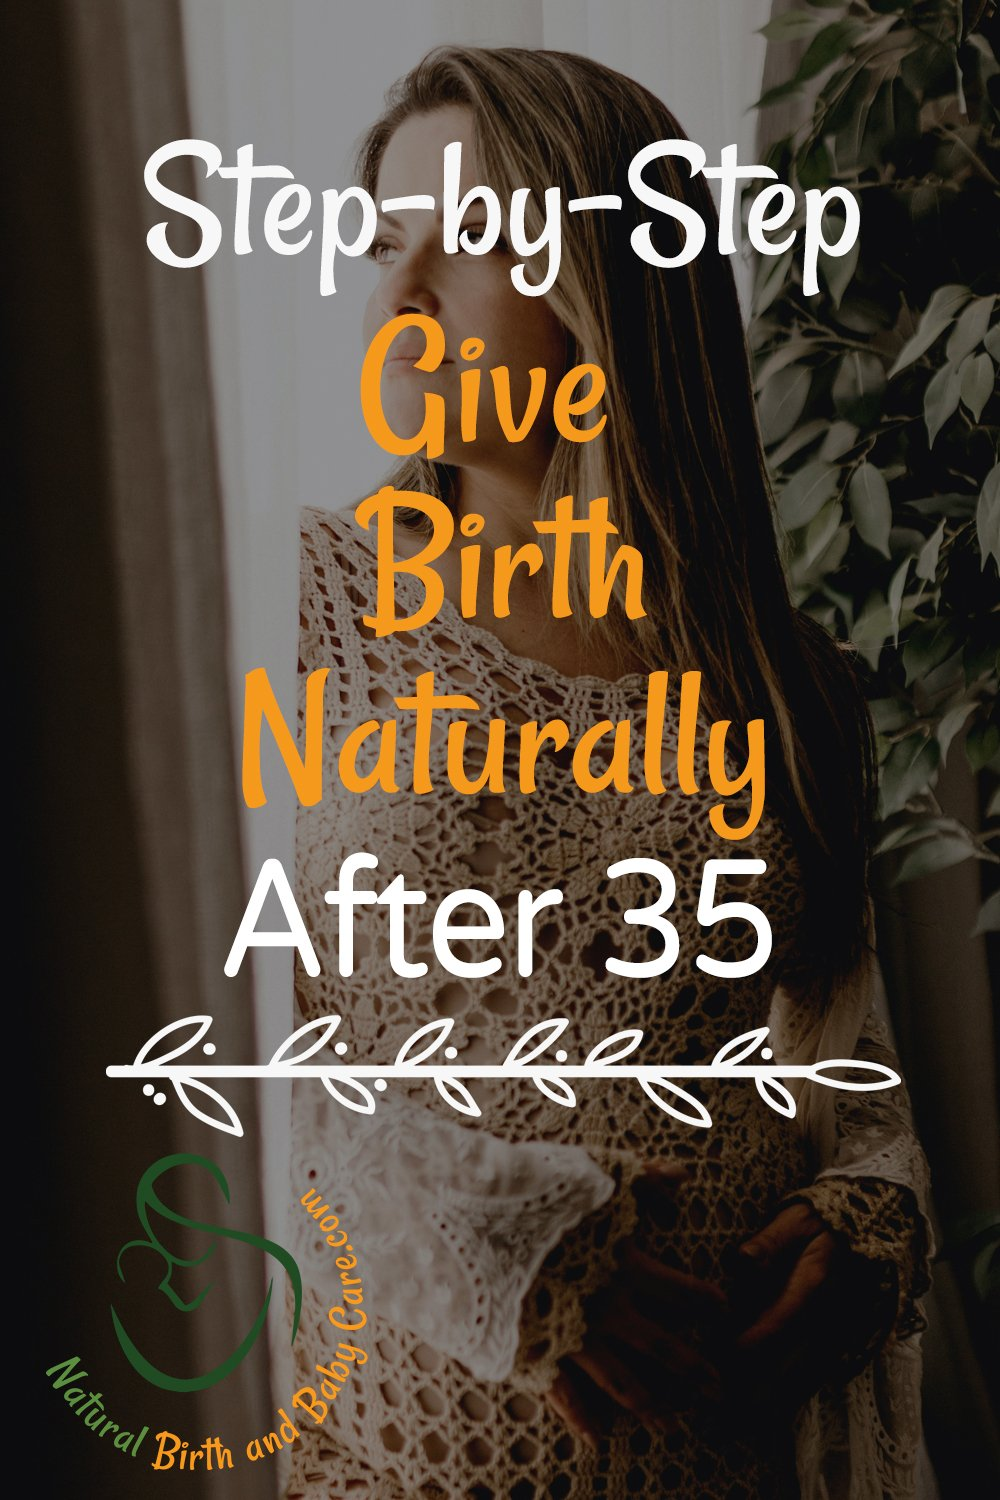 Woman over 35 planning a natural birth